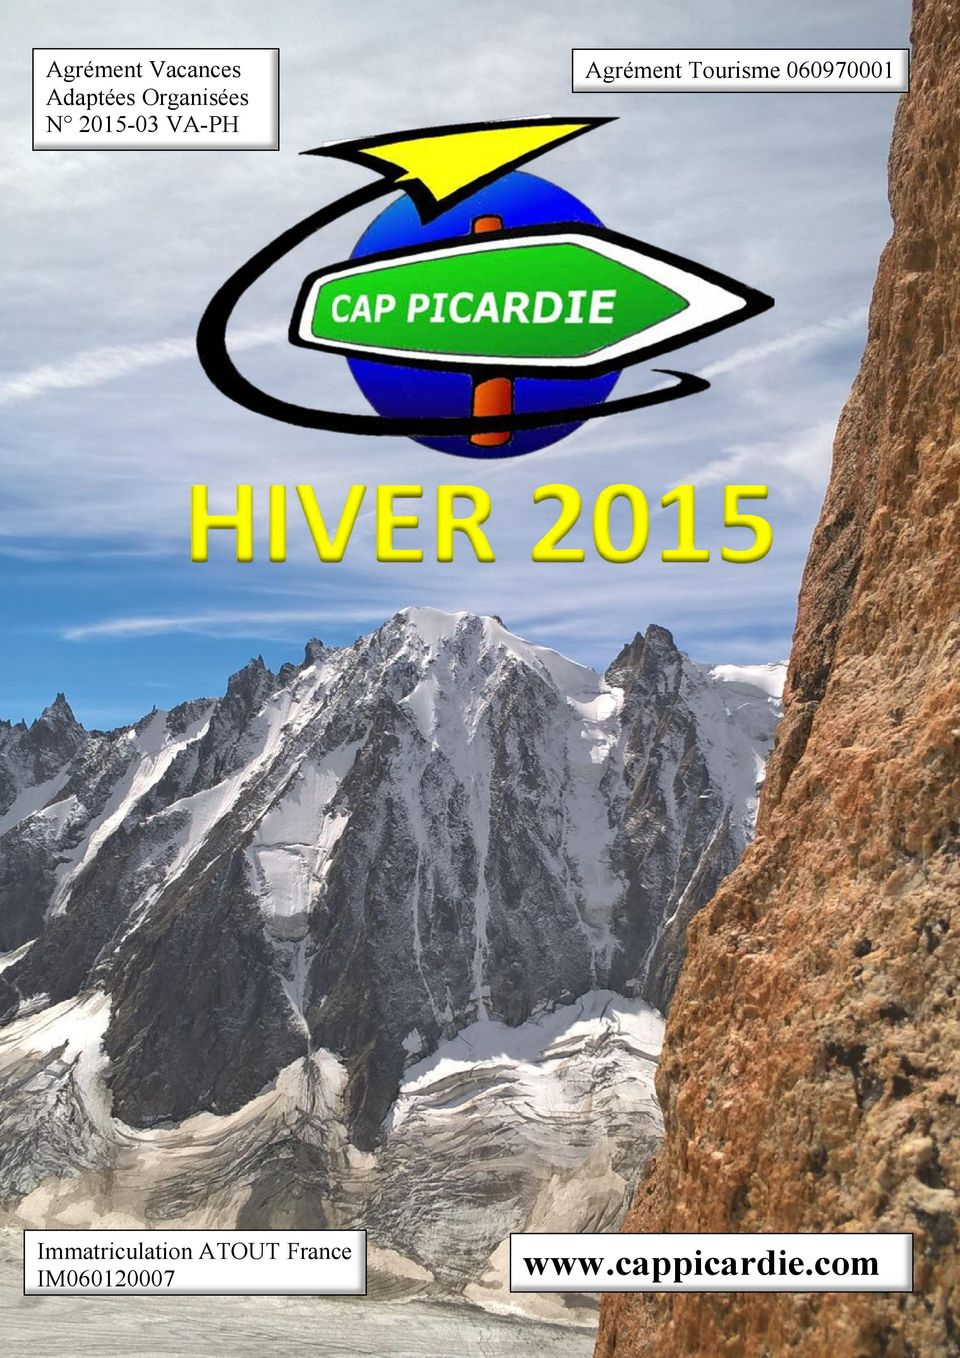 060970001 HIVER 2015 Immatriculation